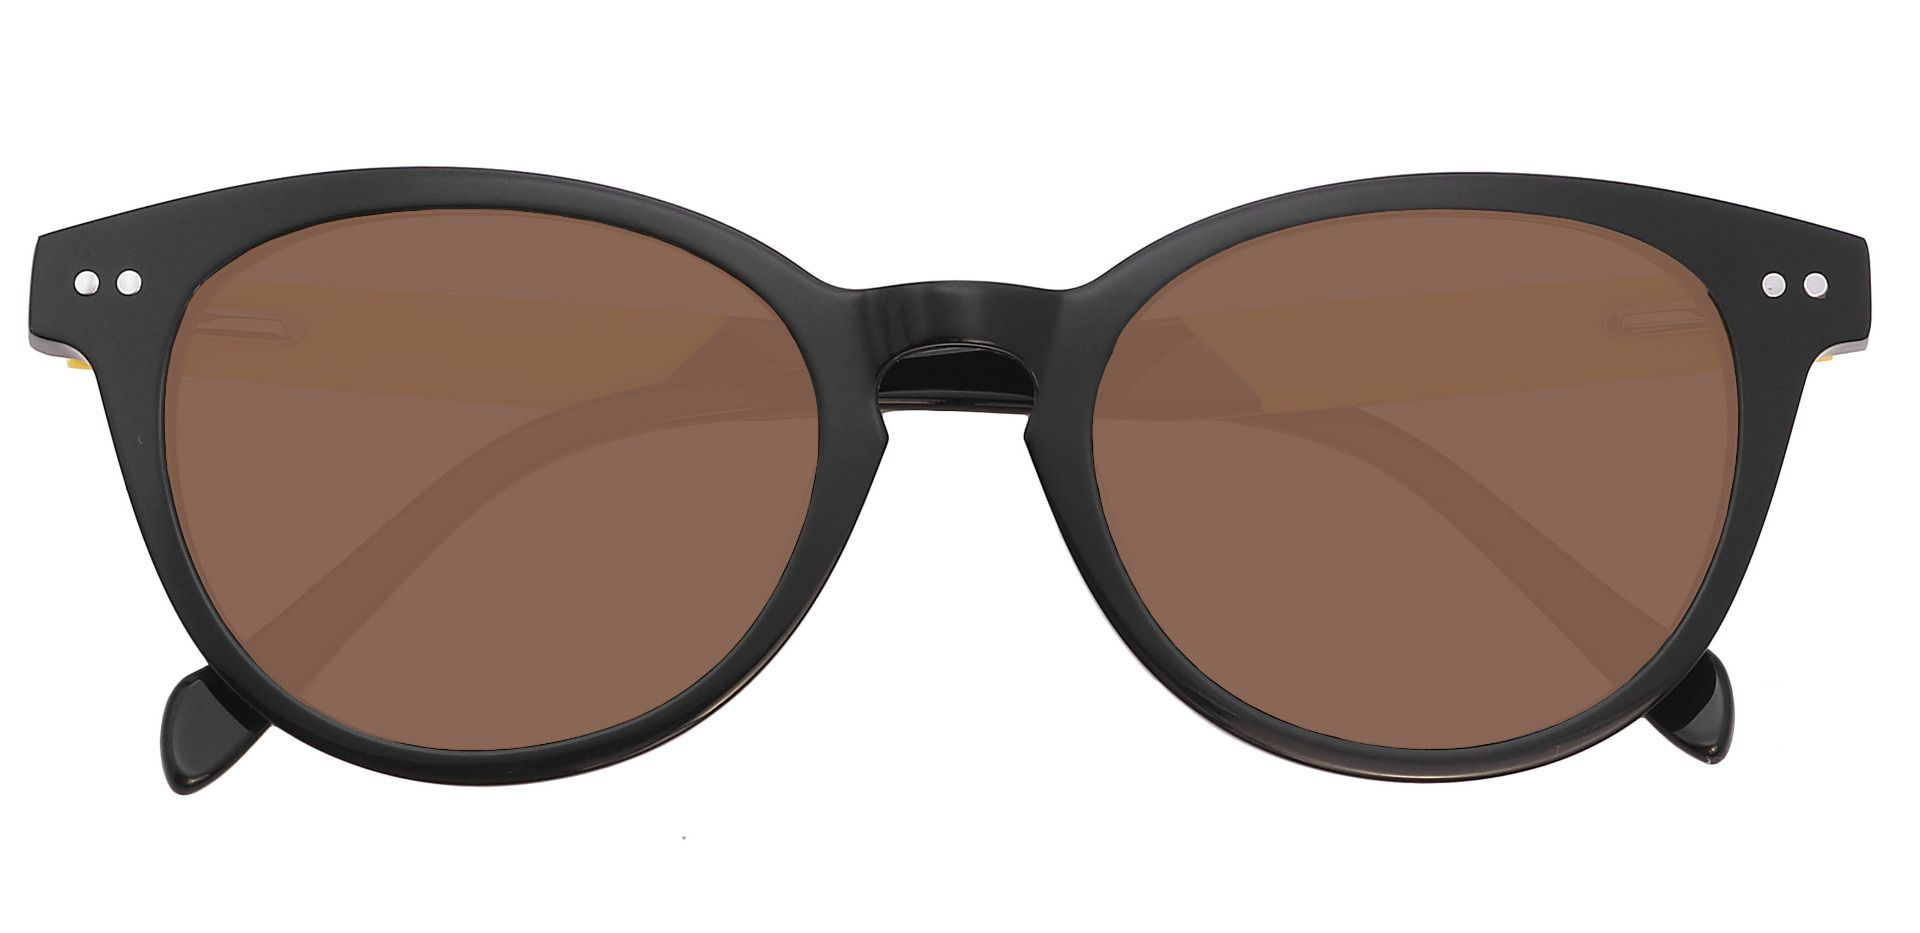 Forbes Oval Prescription Sunglasses - Black Frame With Brown Lenses